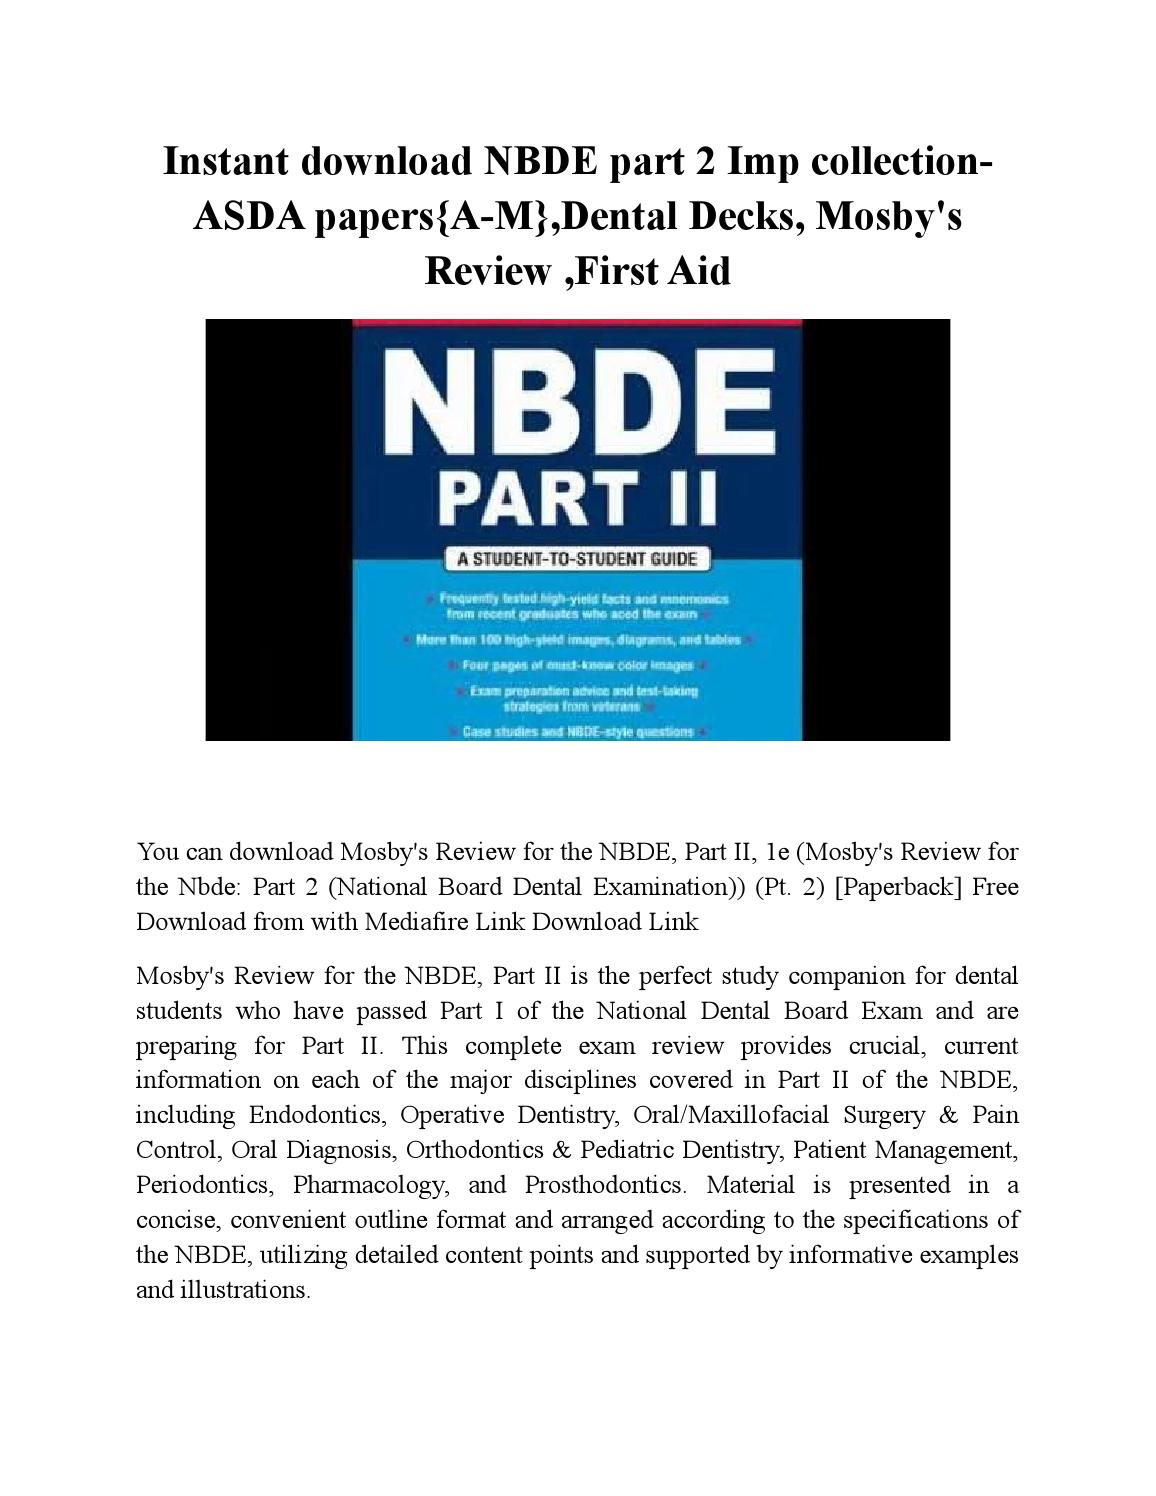 Taking the NBDE Parts I and II